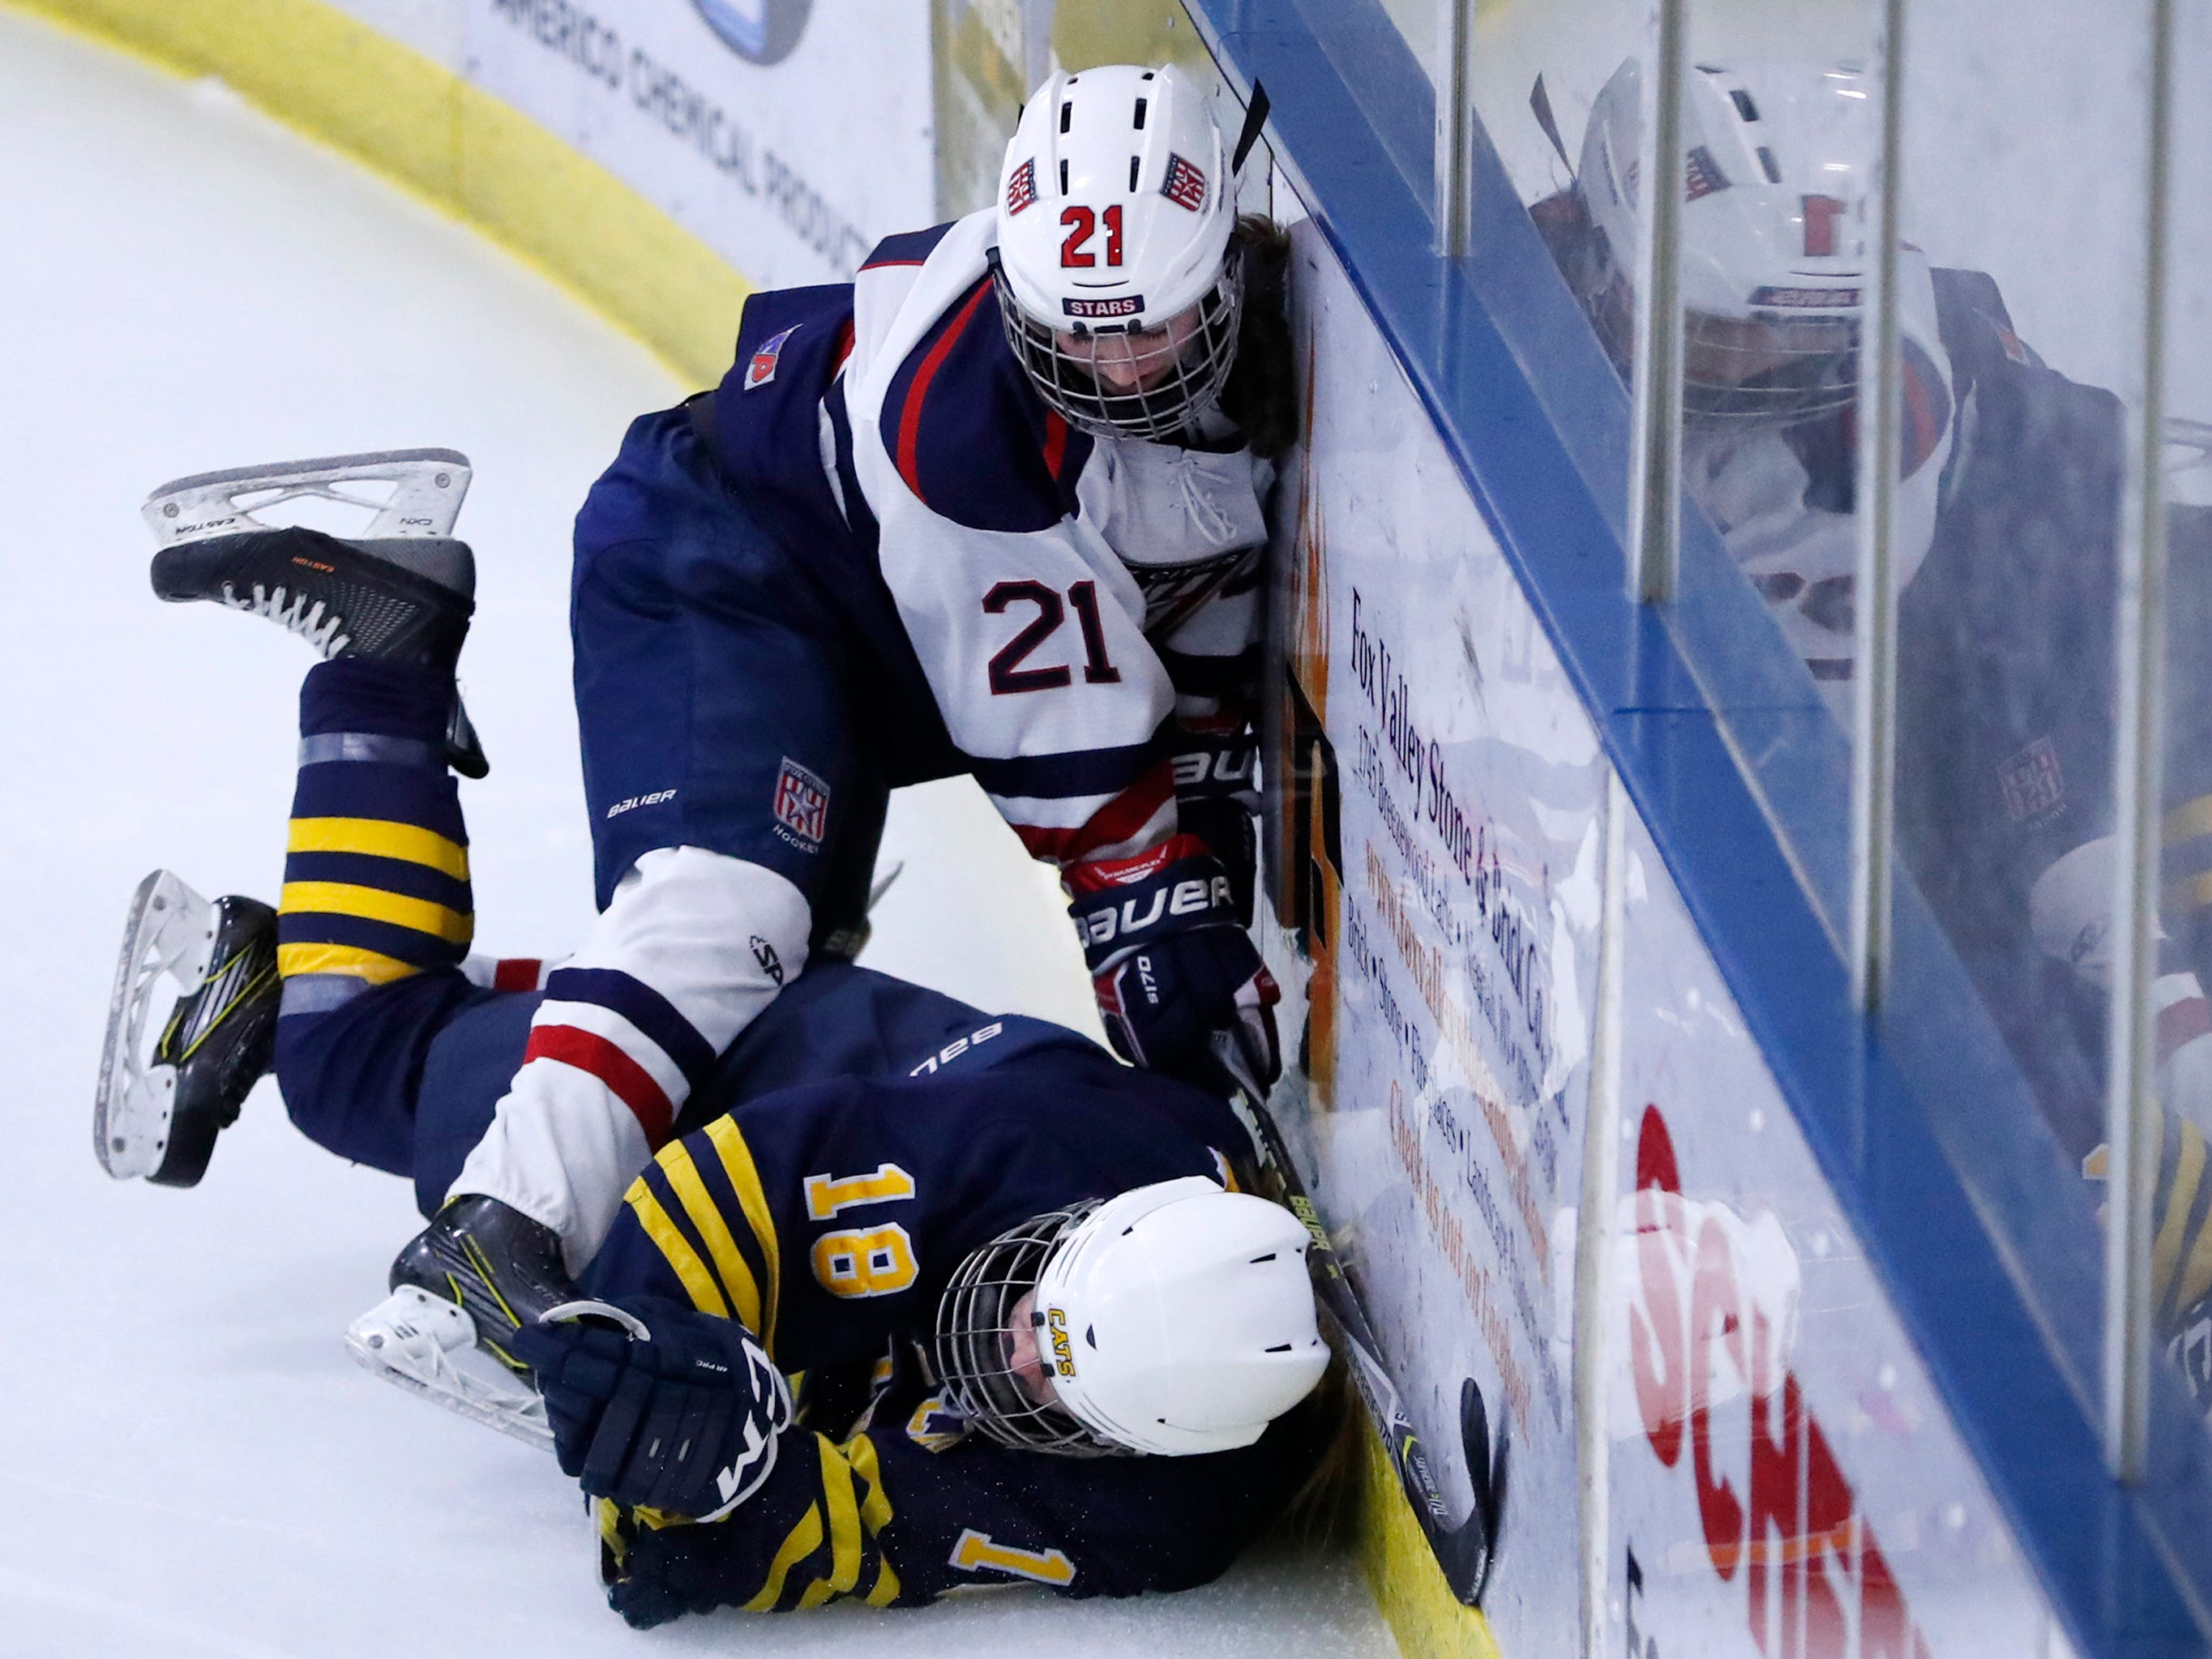 Fox Cities Stars' Sarah Marvin hits the wall after colliding with University School Co-op's Lexie Epperson during their sectional semifinal Tuesday, Feb. 19, 2019, at the Tri-County Ice Arena in Neenah, Wis.Danny Damiani/USA TODAY NETWORK-Wisconsin